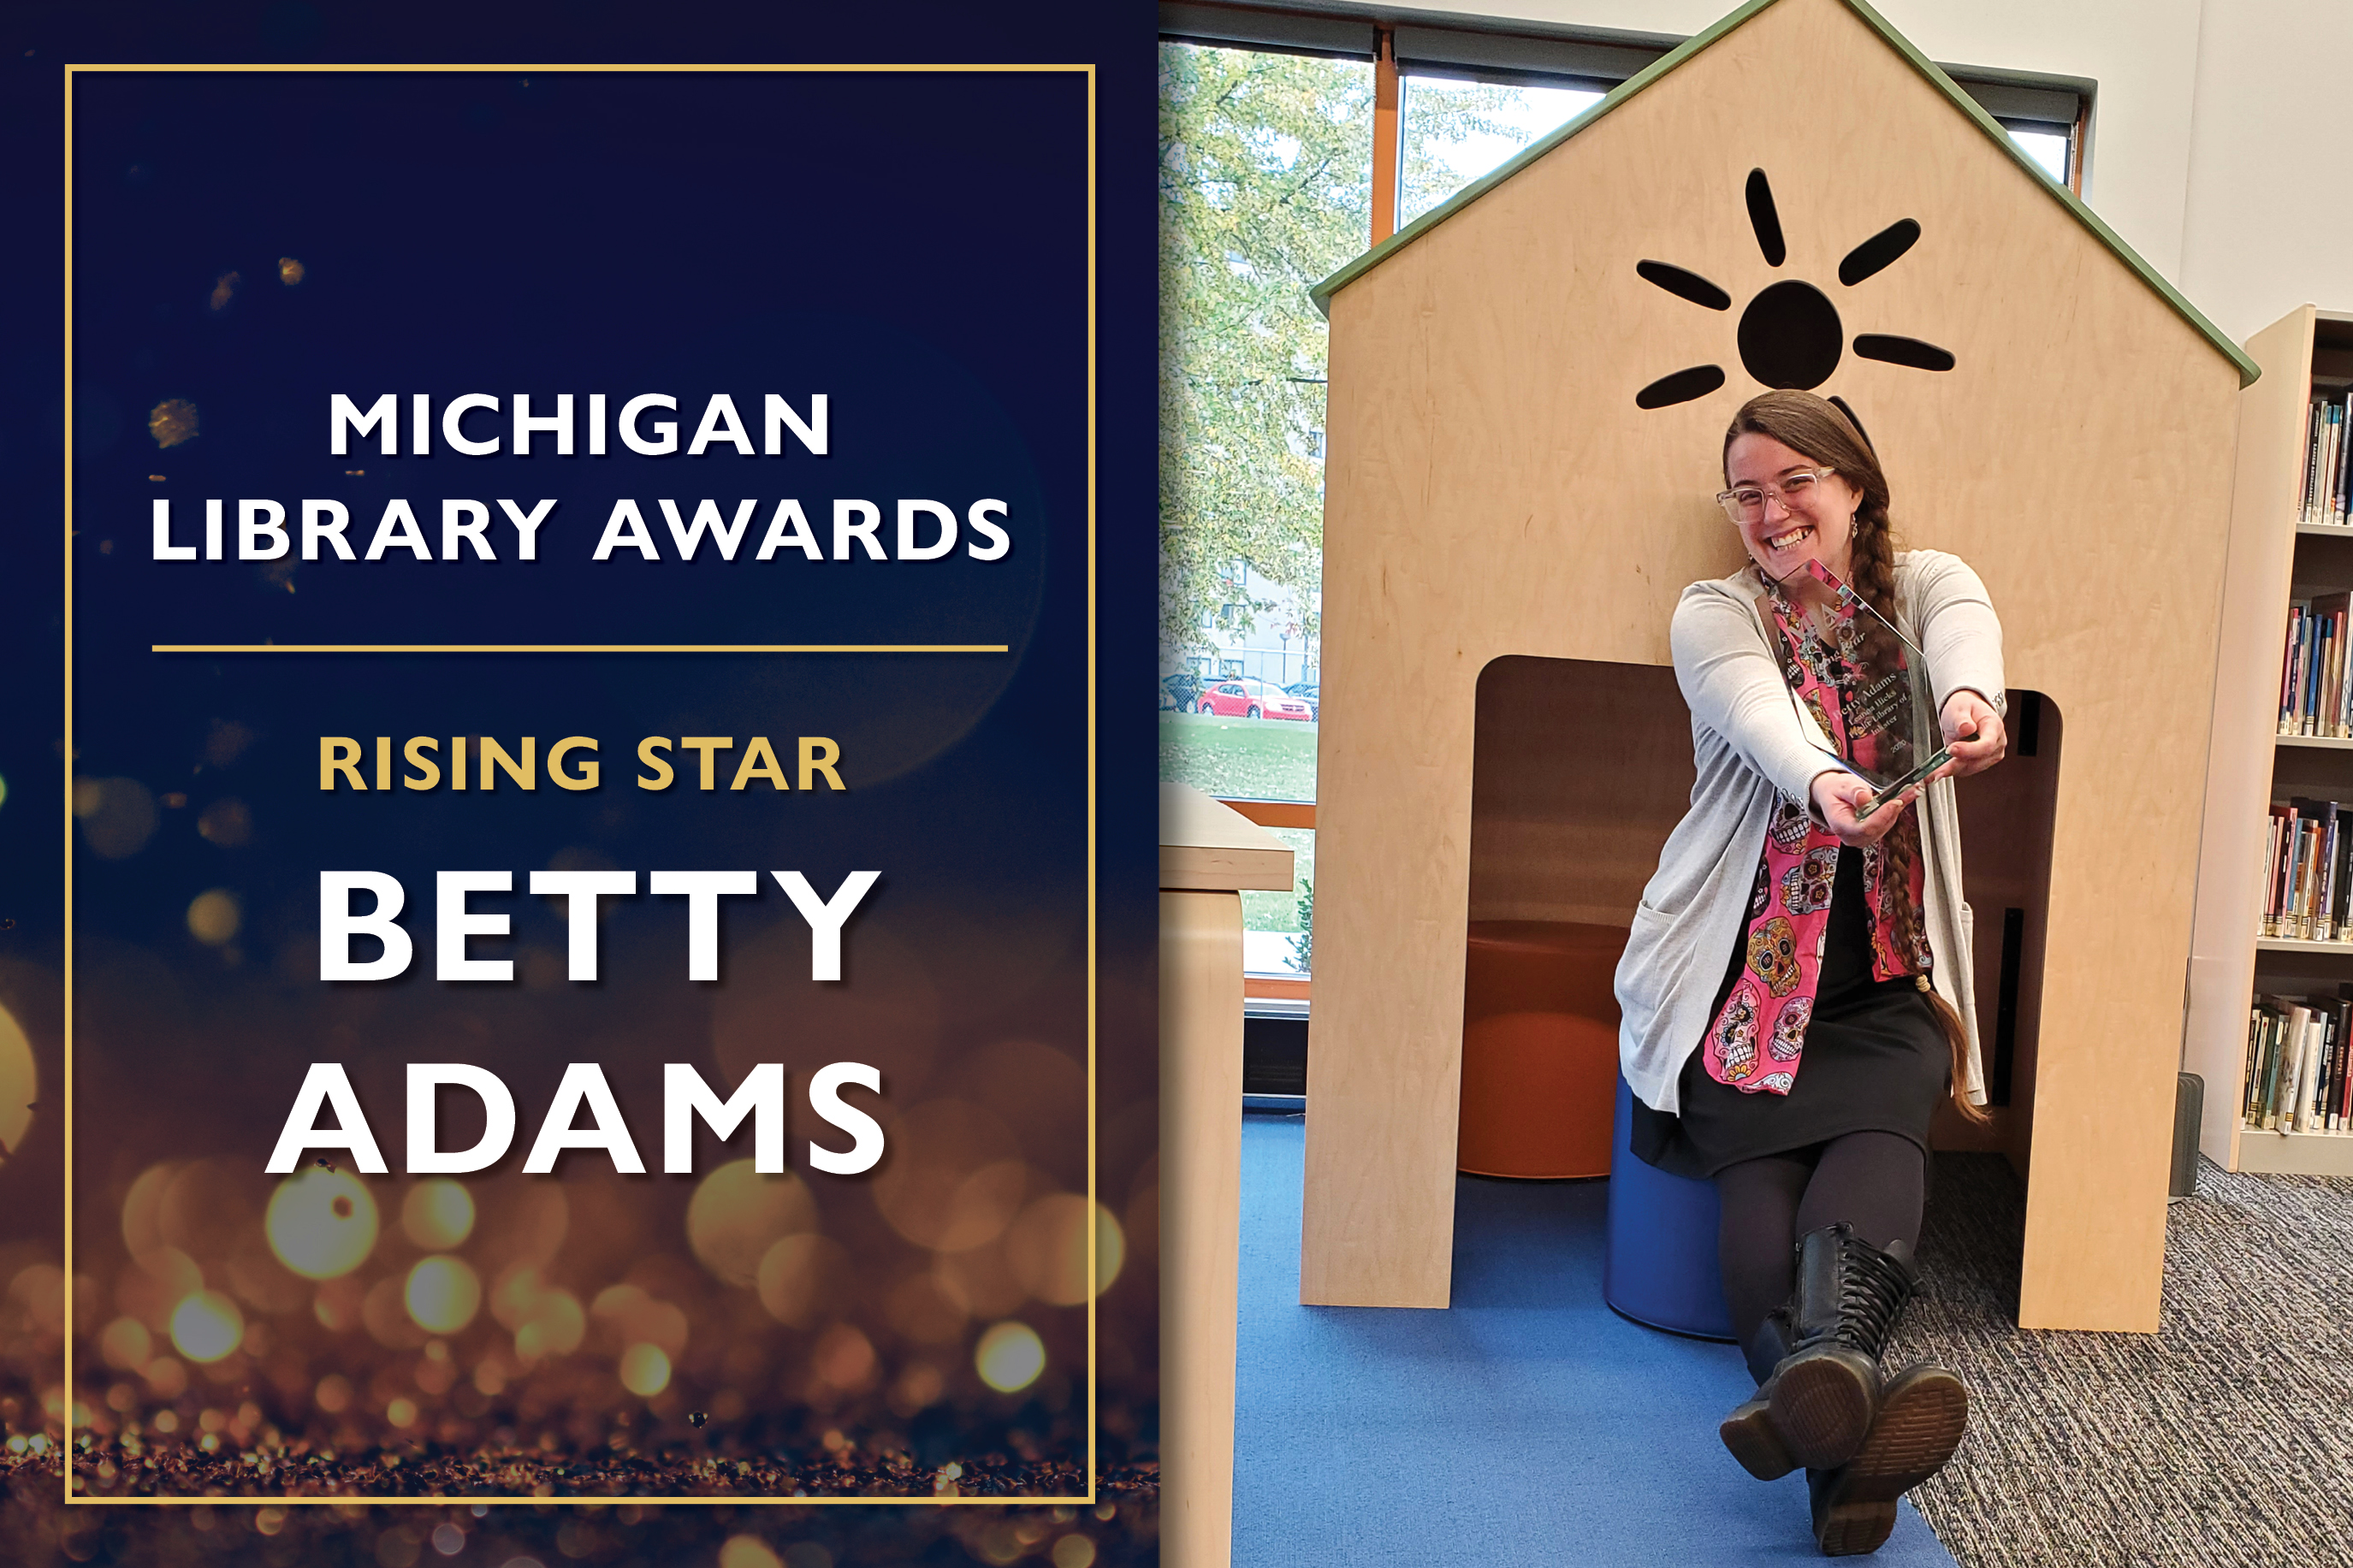 Rising Star  Betty Adams, Library Director at the Leanna Hicks Public Library of Inkster